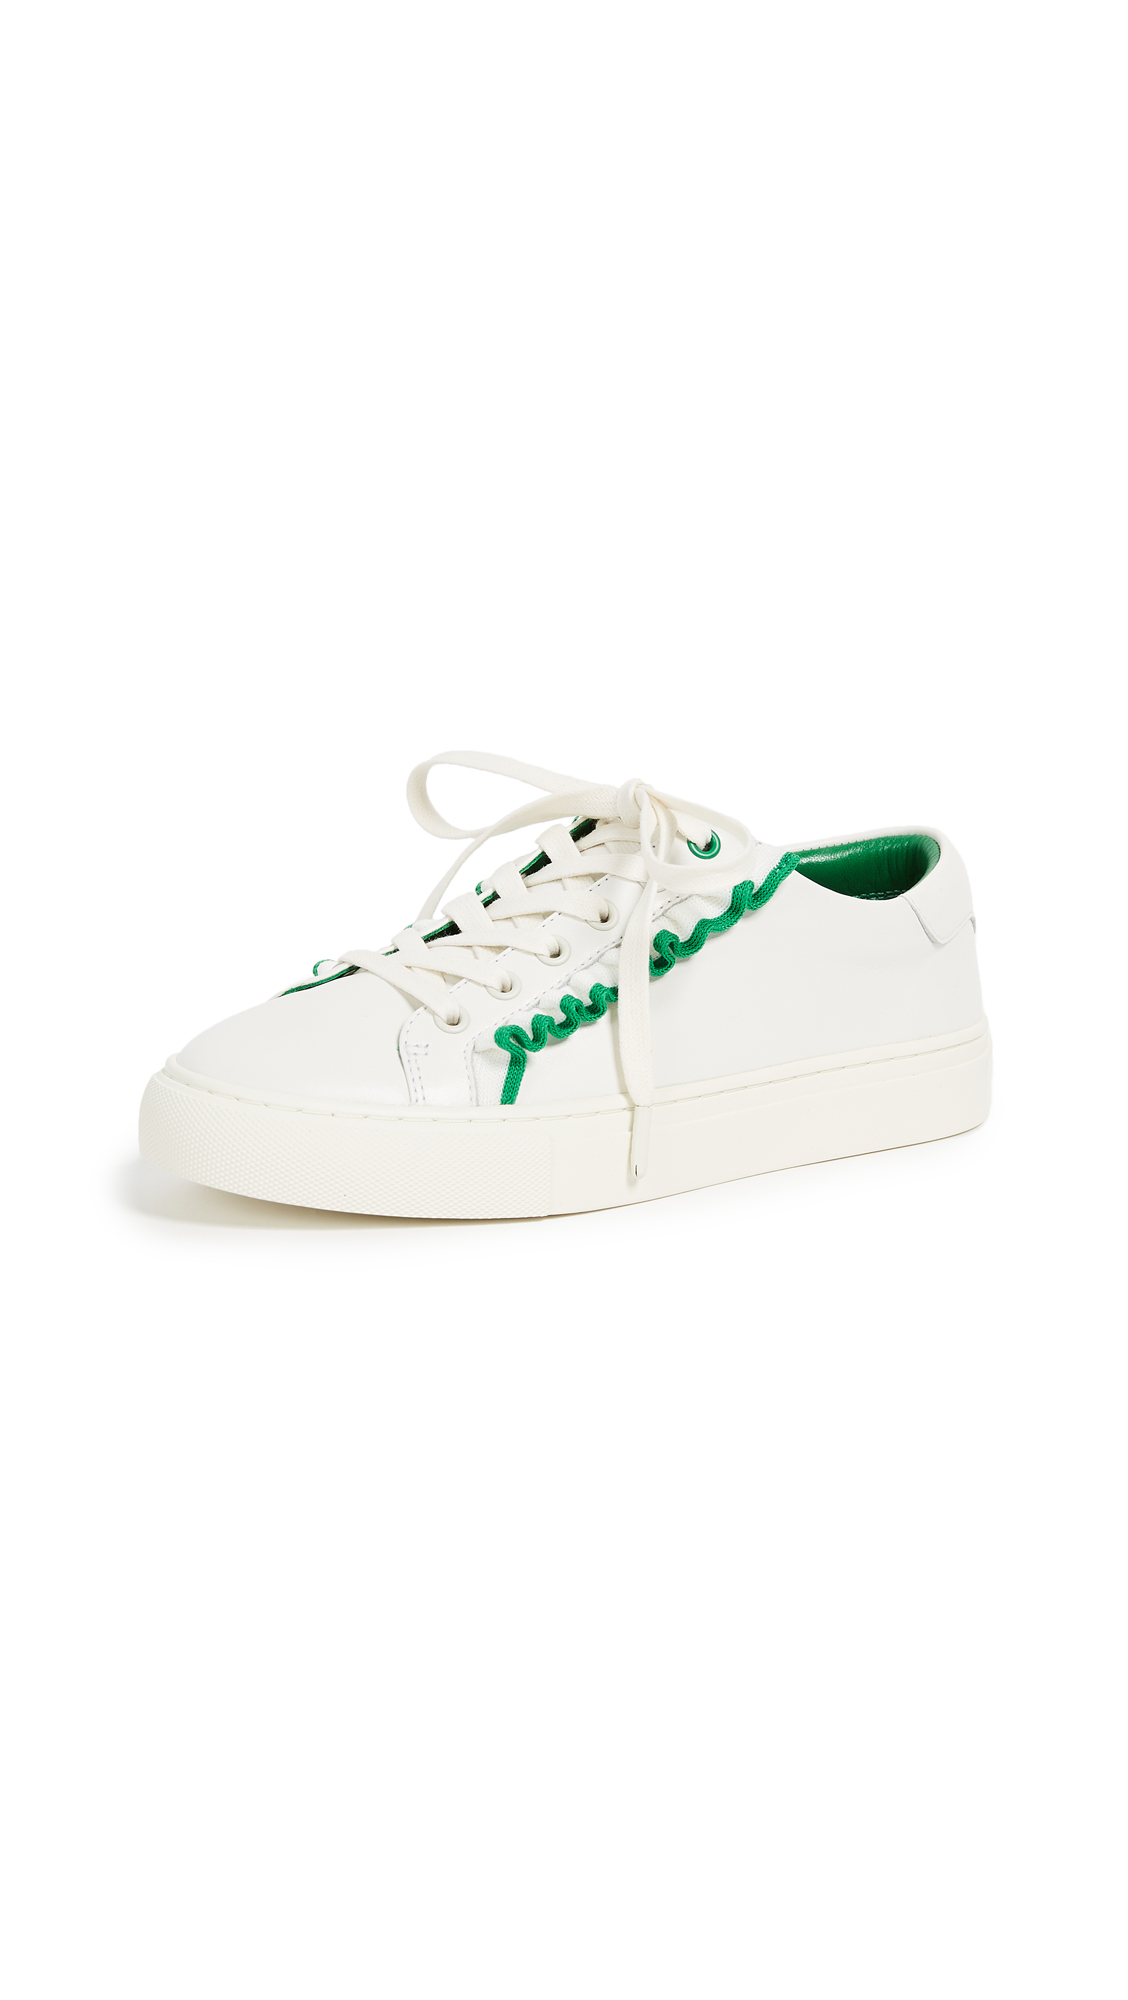 Tory Sport Ruffle Sneakers - Snow White/Vineyard